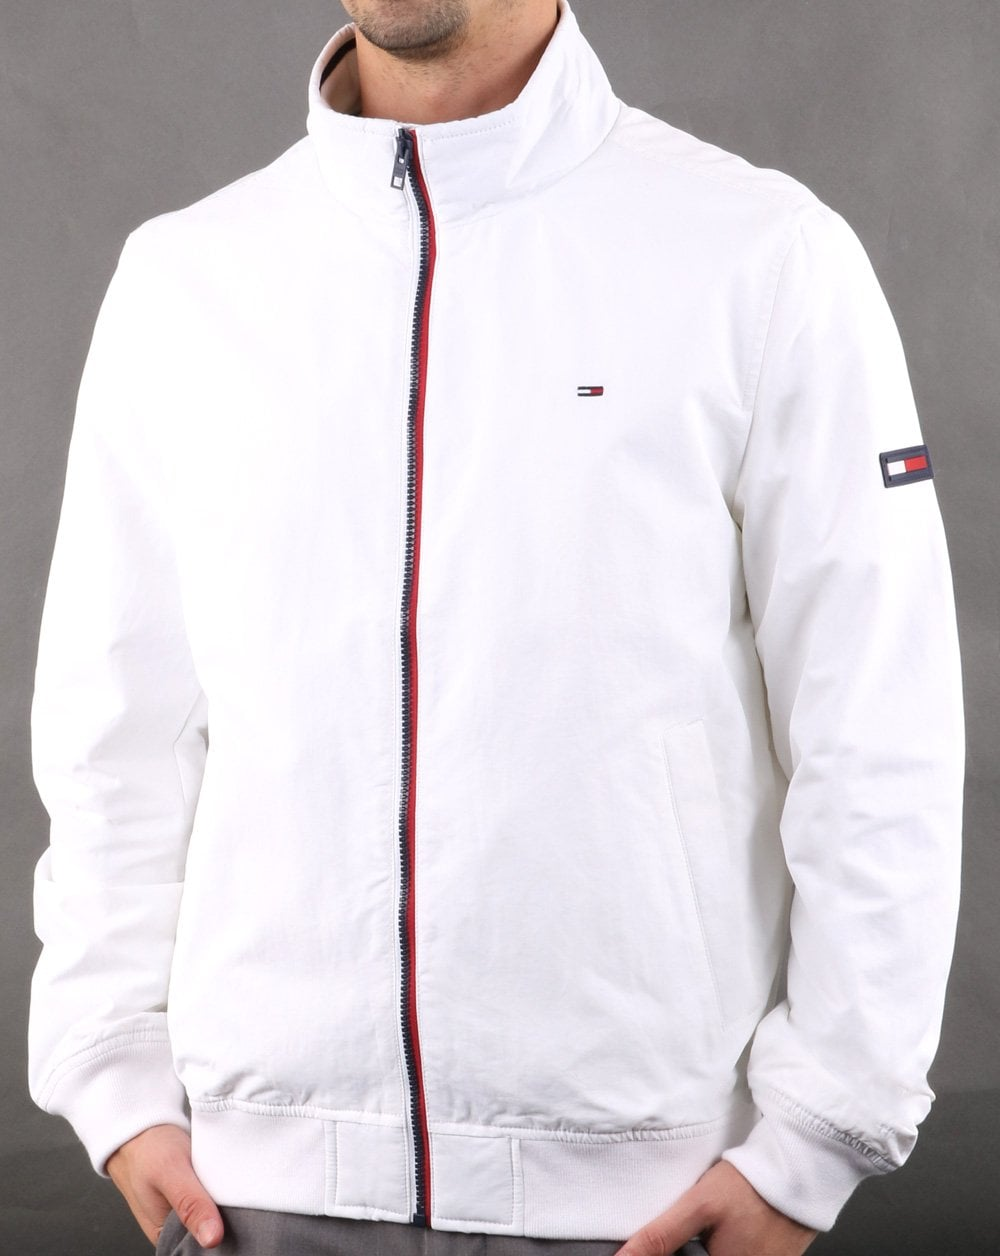 46aacbc6 Tommy Hilfiger Bomber Jacket white | 80s Casual Classics